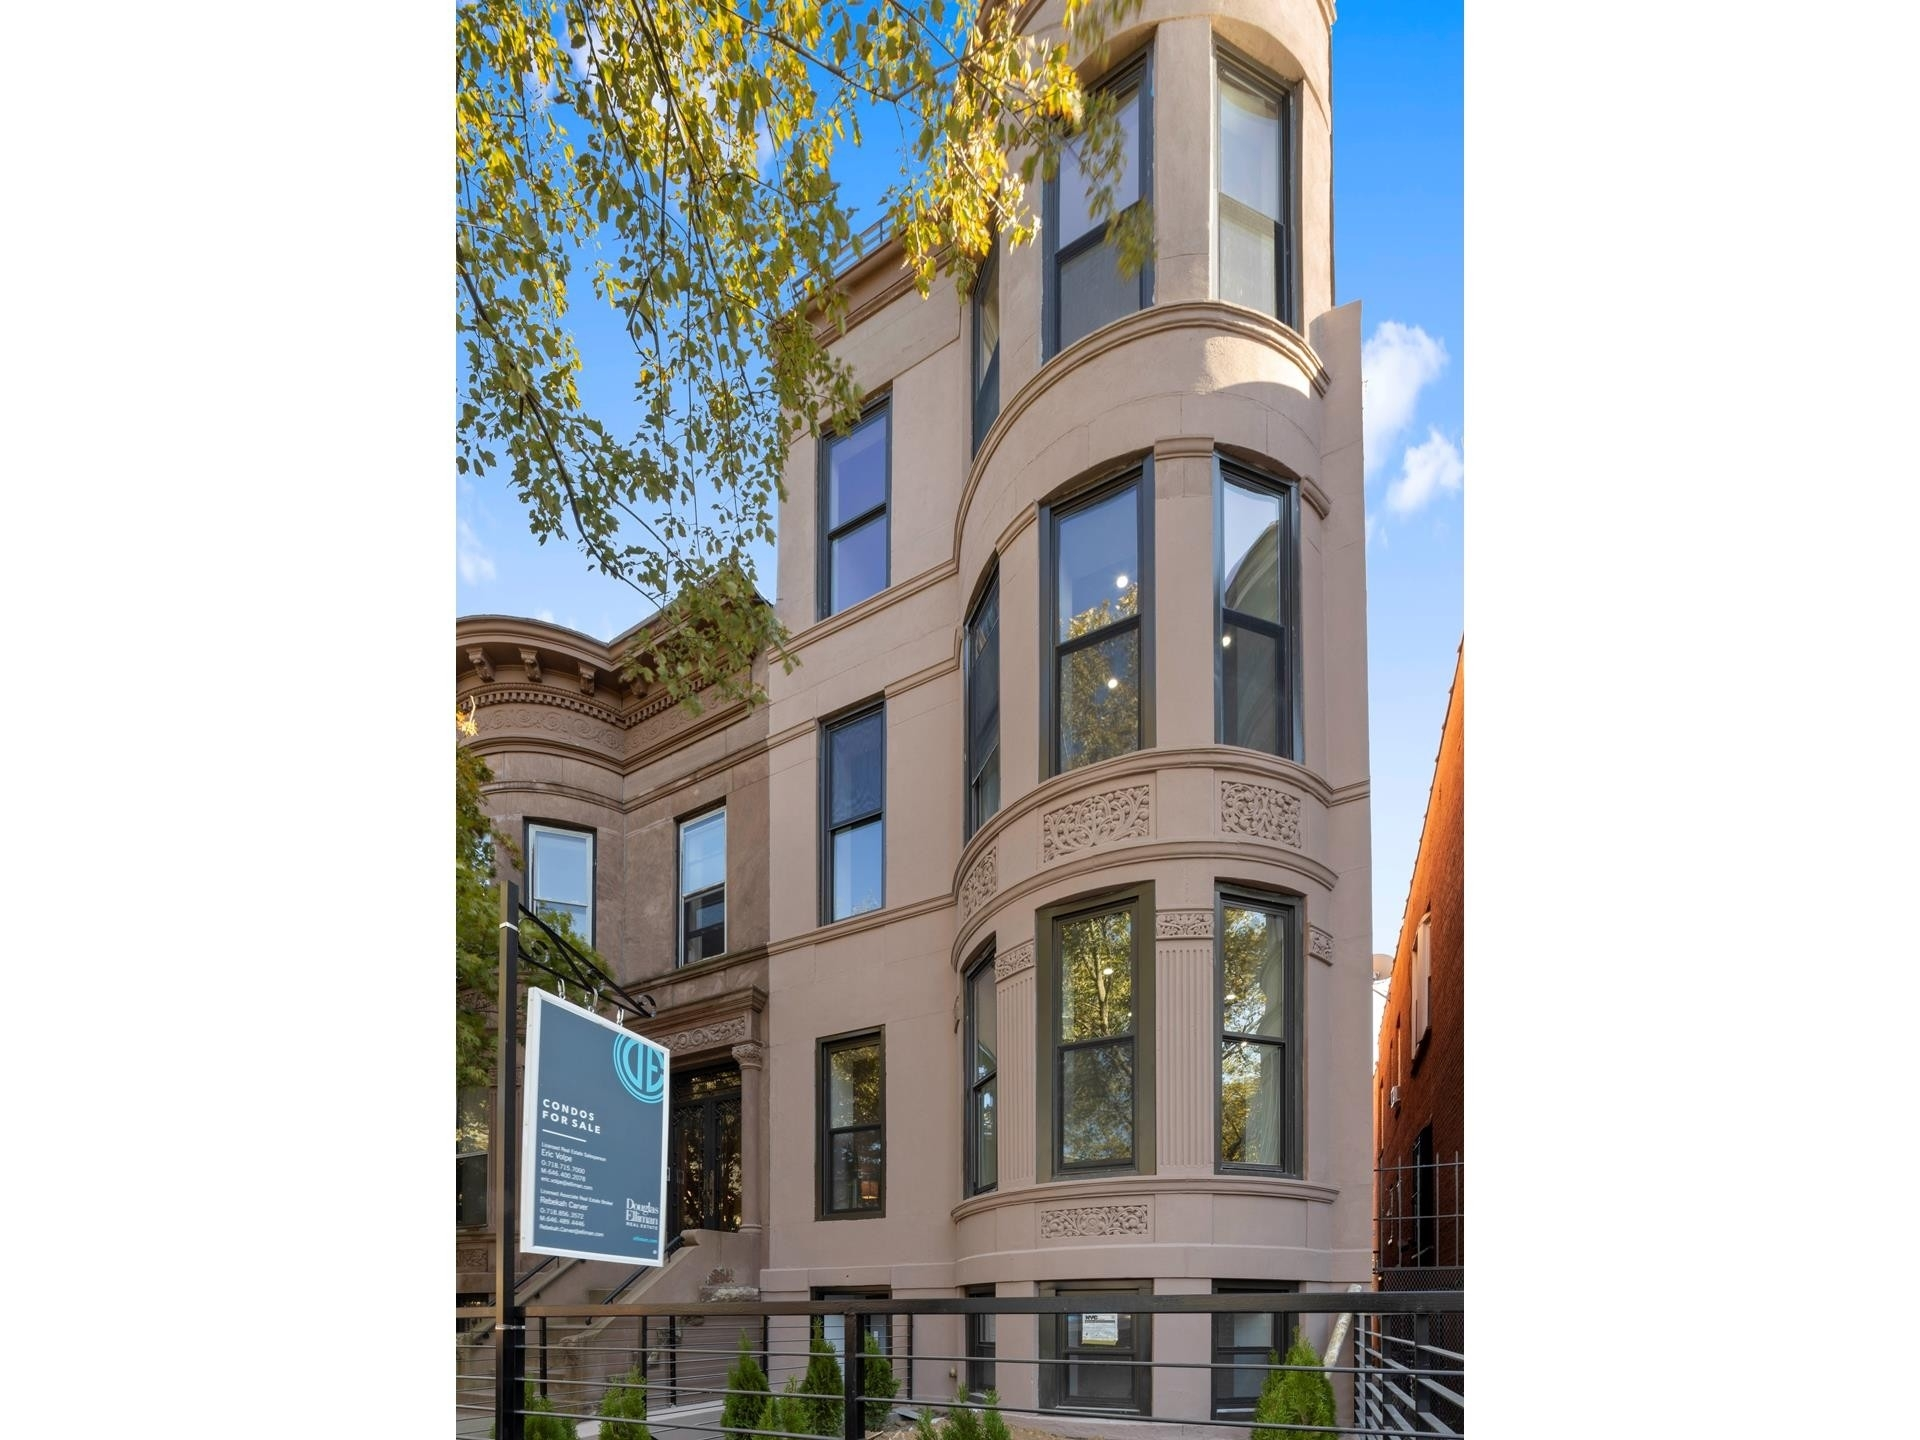 Property at 1090 Carroll St, 2R Crown Heights, Brooklyn, NY 11225